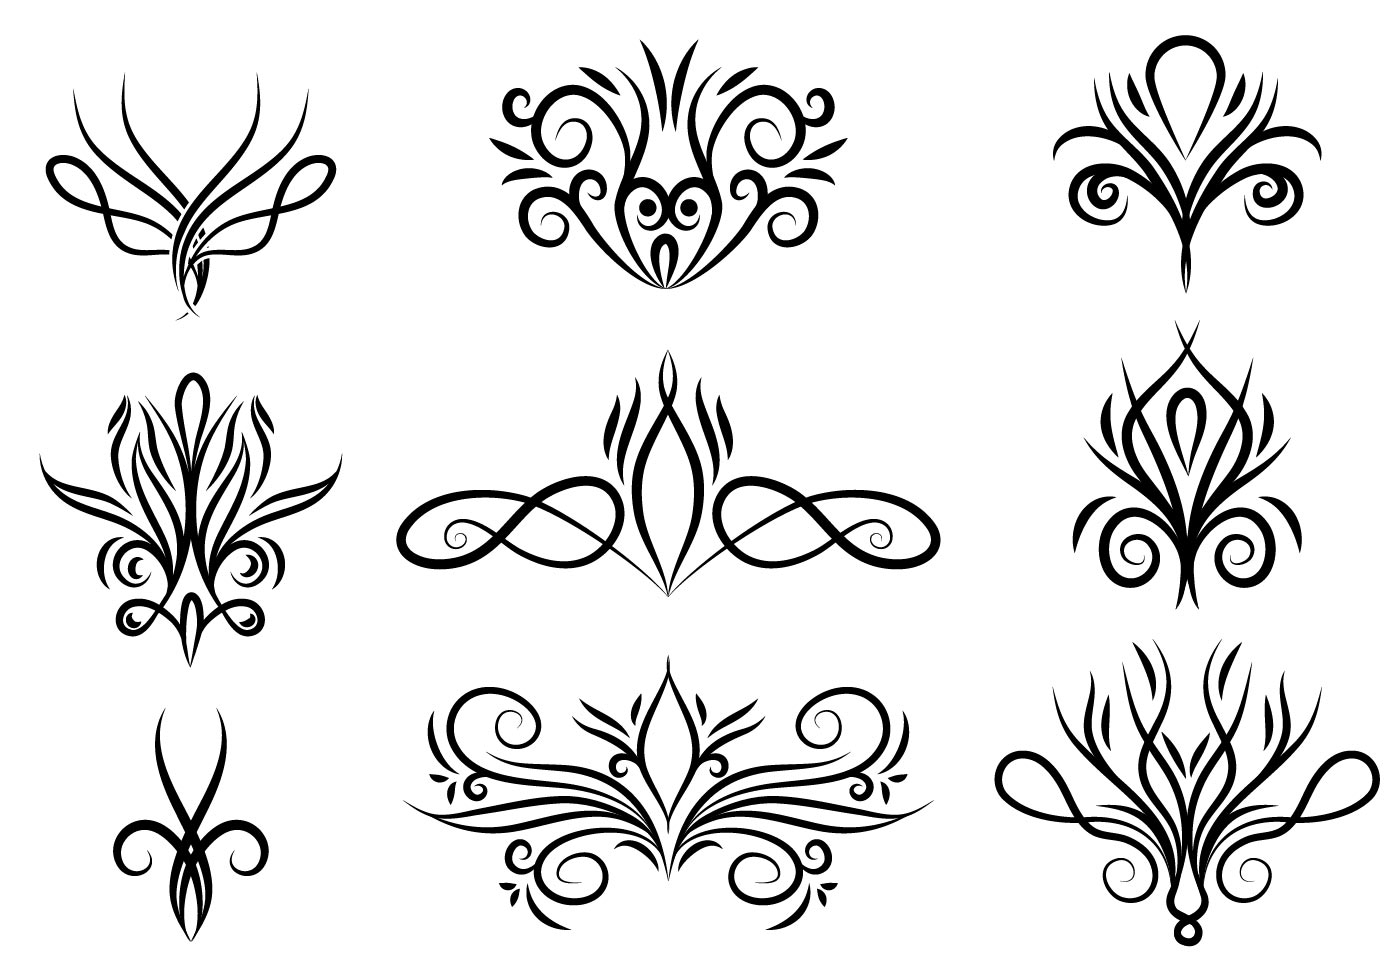 Swirls Free Vector Art